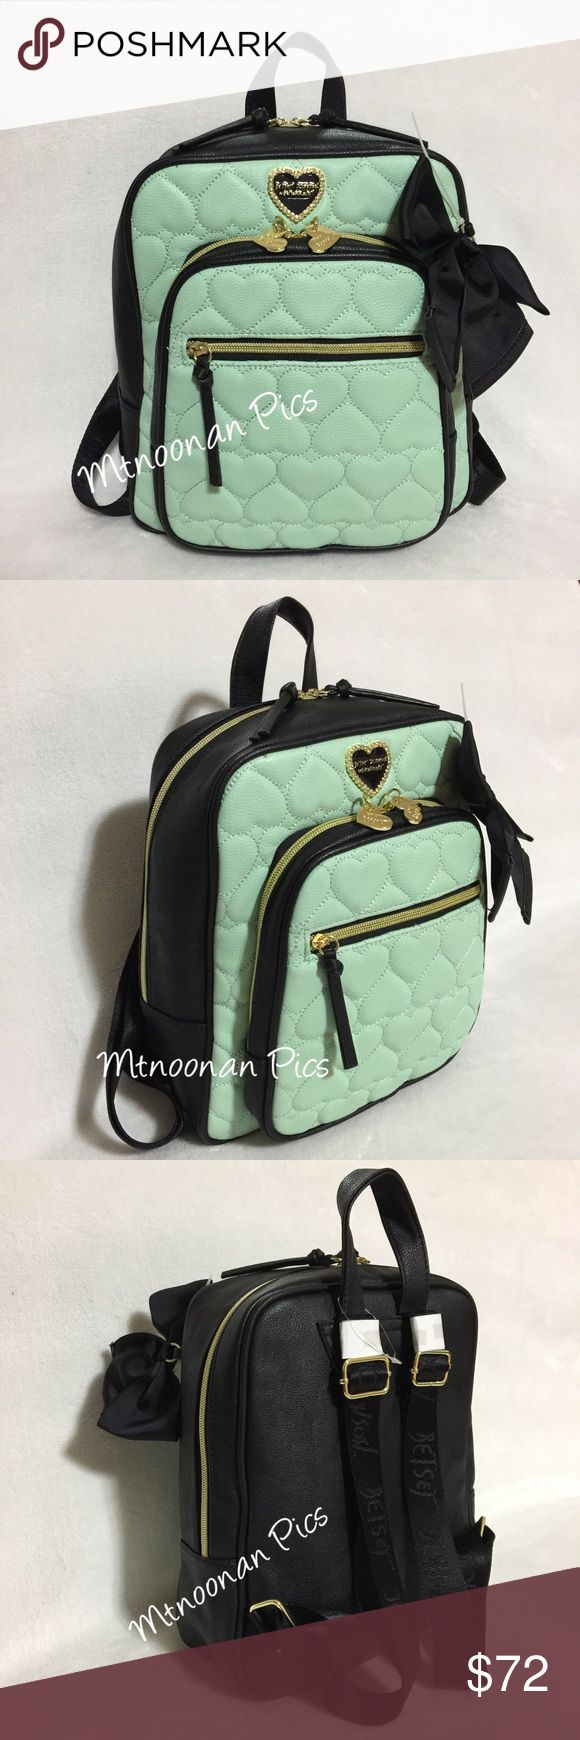 """Authentic Betsey Johnson Mint Backpack Style Purse NEW WITHOUT TAGS Authentic Betsey Johnson Zip Around Be Mine Medium Backpack Style Purse  • Dimensions: 9.5""""W x 11.5""""H x 5""""D with adjustable straps • Interior: 1 zipper pocket and 2 slip pockets with zip around closure • Exterior: Small zip around closure compartment with  front zip pocket • Gold tone hardware • Color: Mint / Black   • Pattern: Quilted Hearts • Faux Leather  * COMES FROM A NON SMOKING PET FREE HOME  🎀 I have more BETSEY…"""